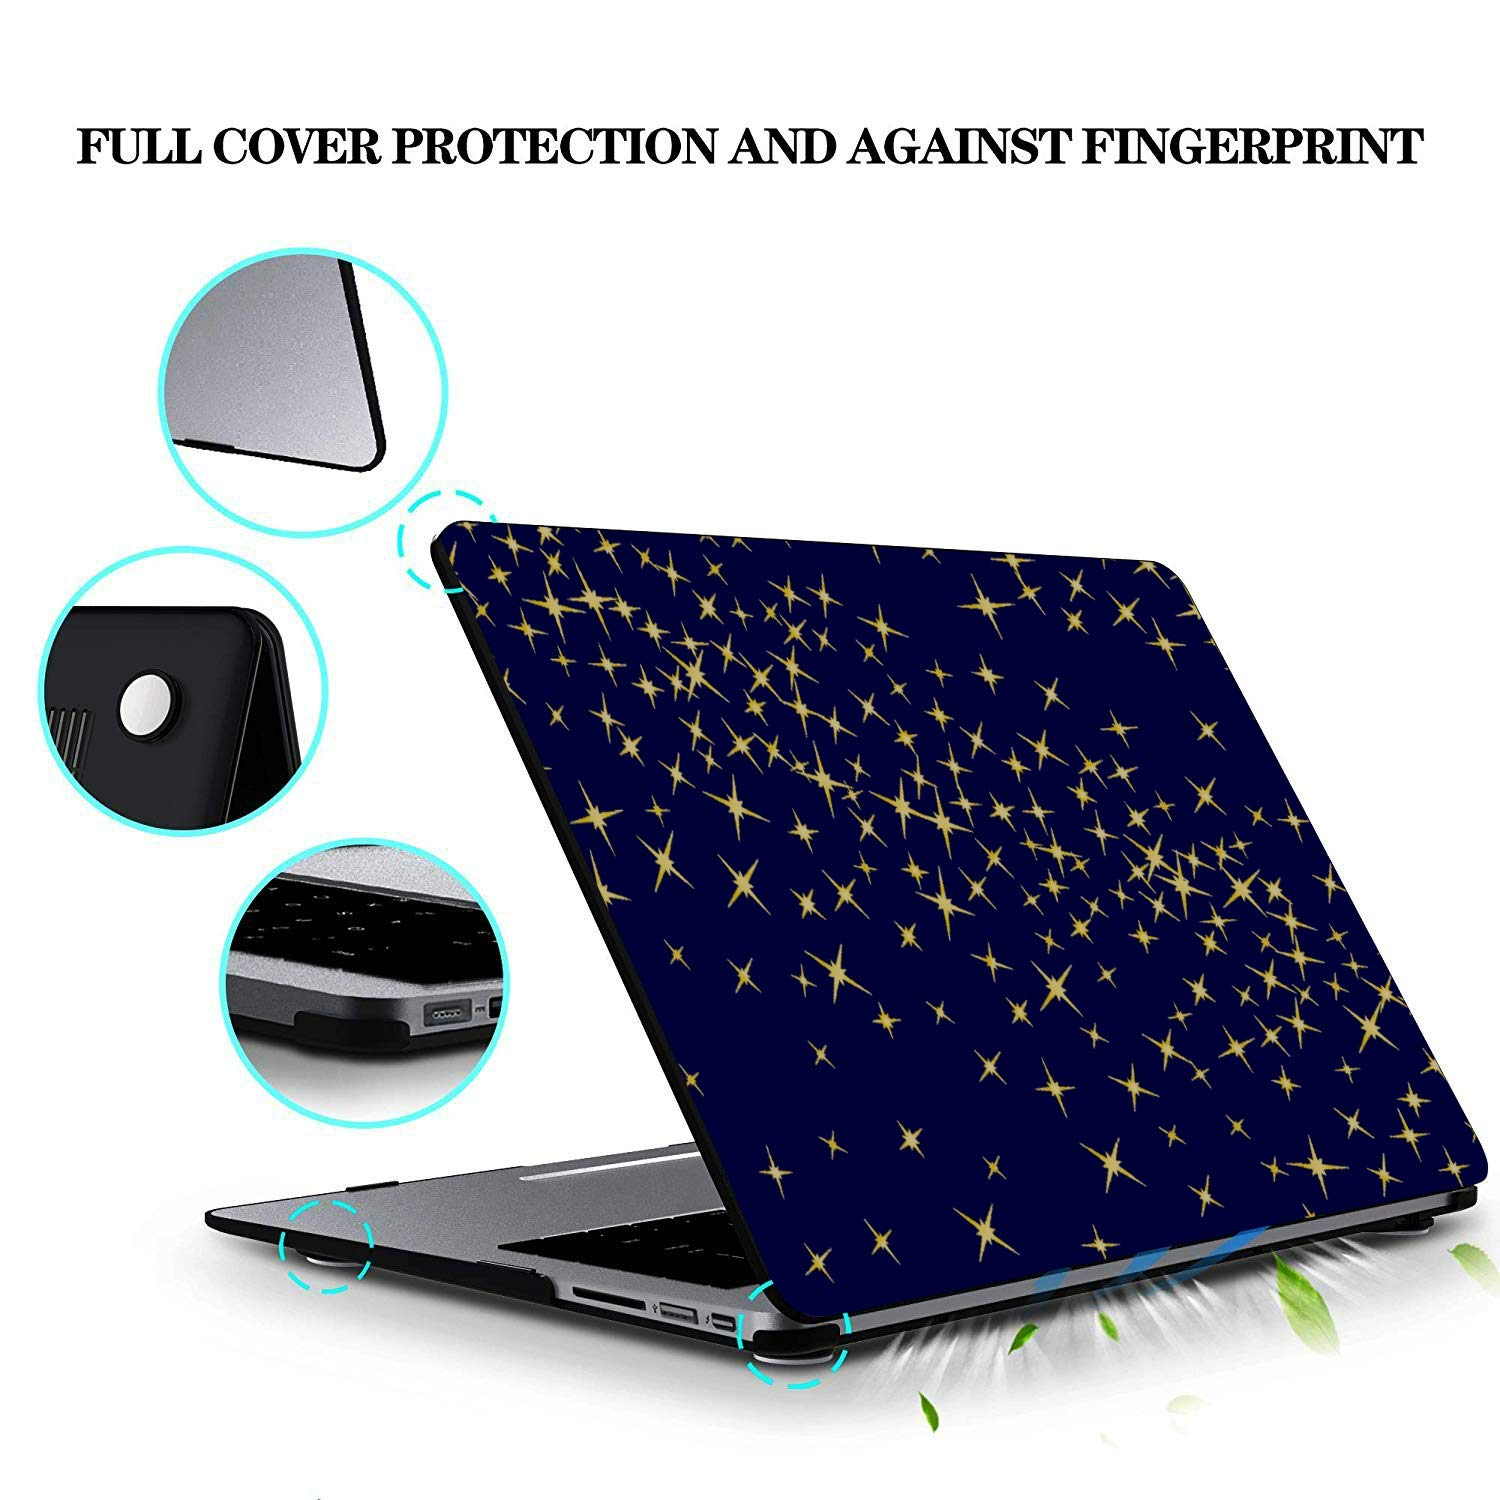 Laptop Cover Shiny Retro Noble Pentagram Sky Plastic Hard Shell Compatible Mac Air 11 Pro 13 15 MacBook Pro Protector Protection for MacBook 2016-2019 Version